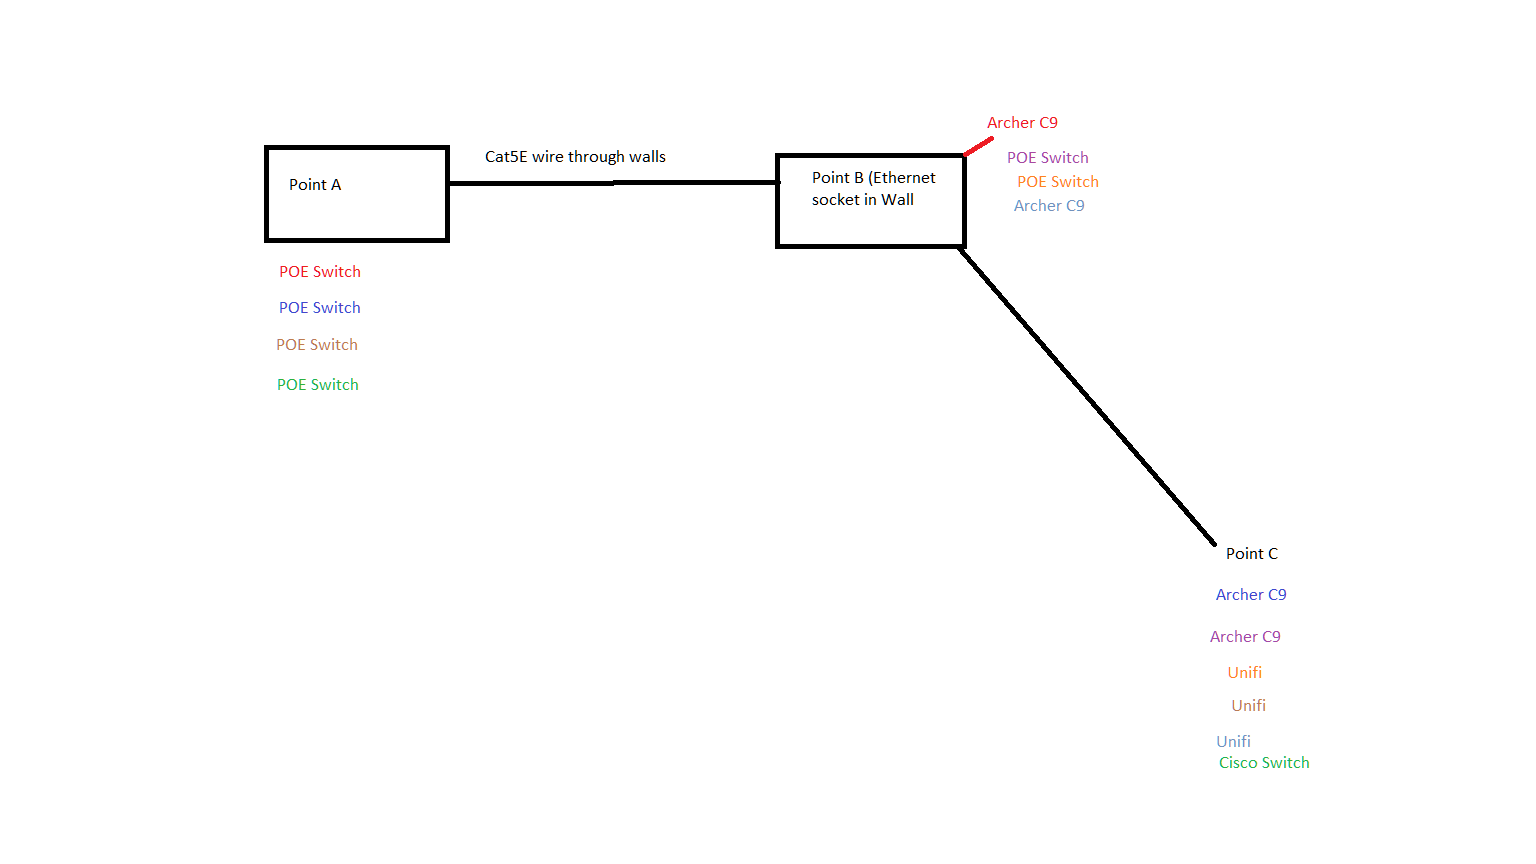 hight resolution of i ve tried to use different colors to denote the different scenarios i have tried